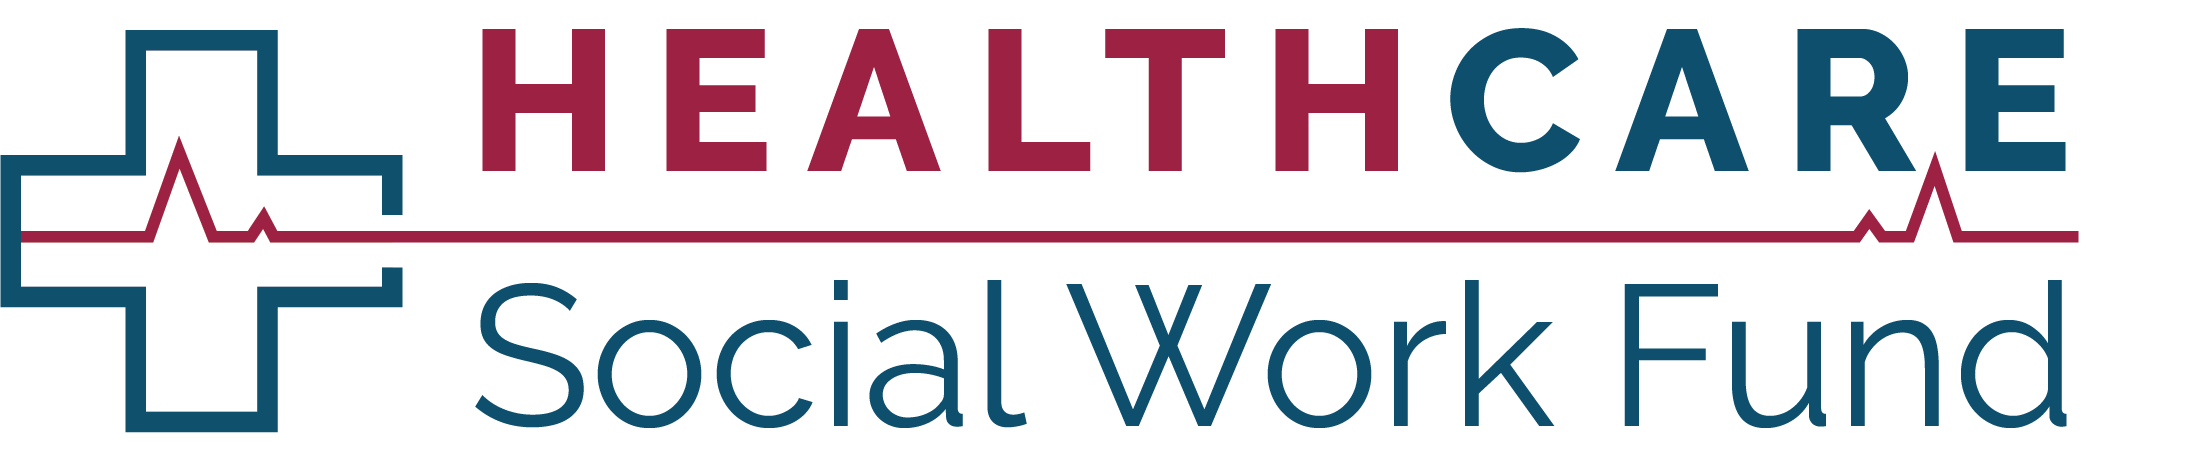 healthcare social work fund logo